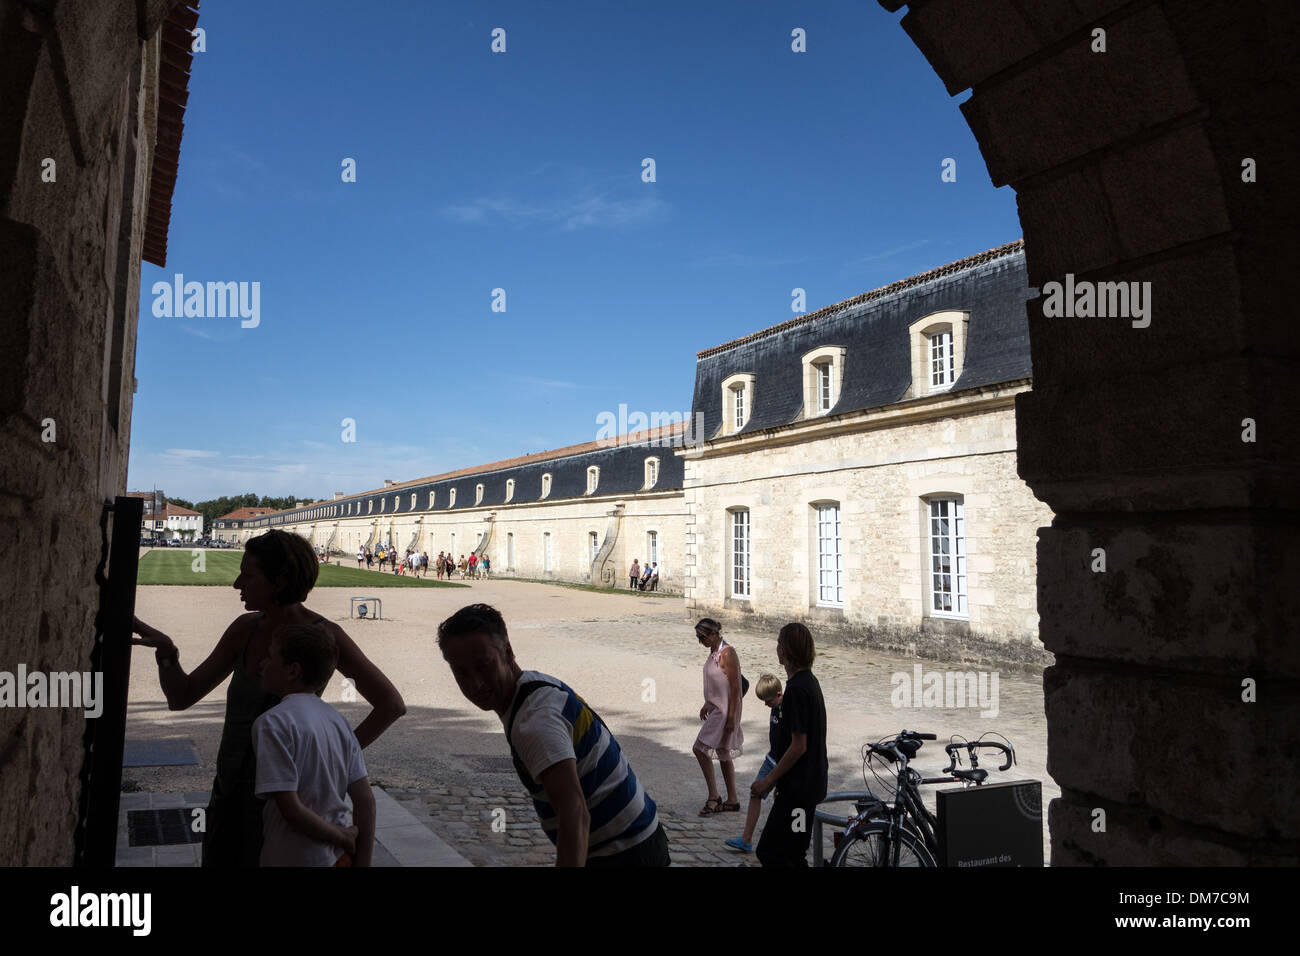 CORDERIE ROYALE (ROYAL ROPE FACTORY), 17TH CENTURY BUILDING TODAY HOUSING THE INTERNATIONAL CENTRE OF THE SEA, ROCHEFORT, CHARENTE-MARITIME (17), FRANCE - Stock Image